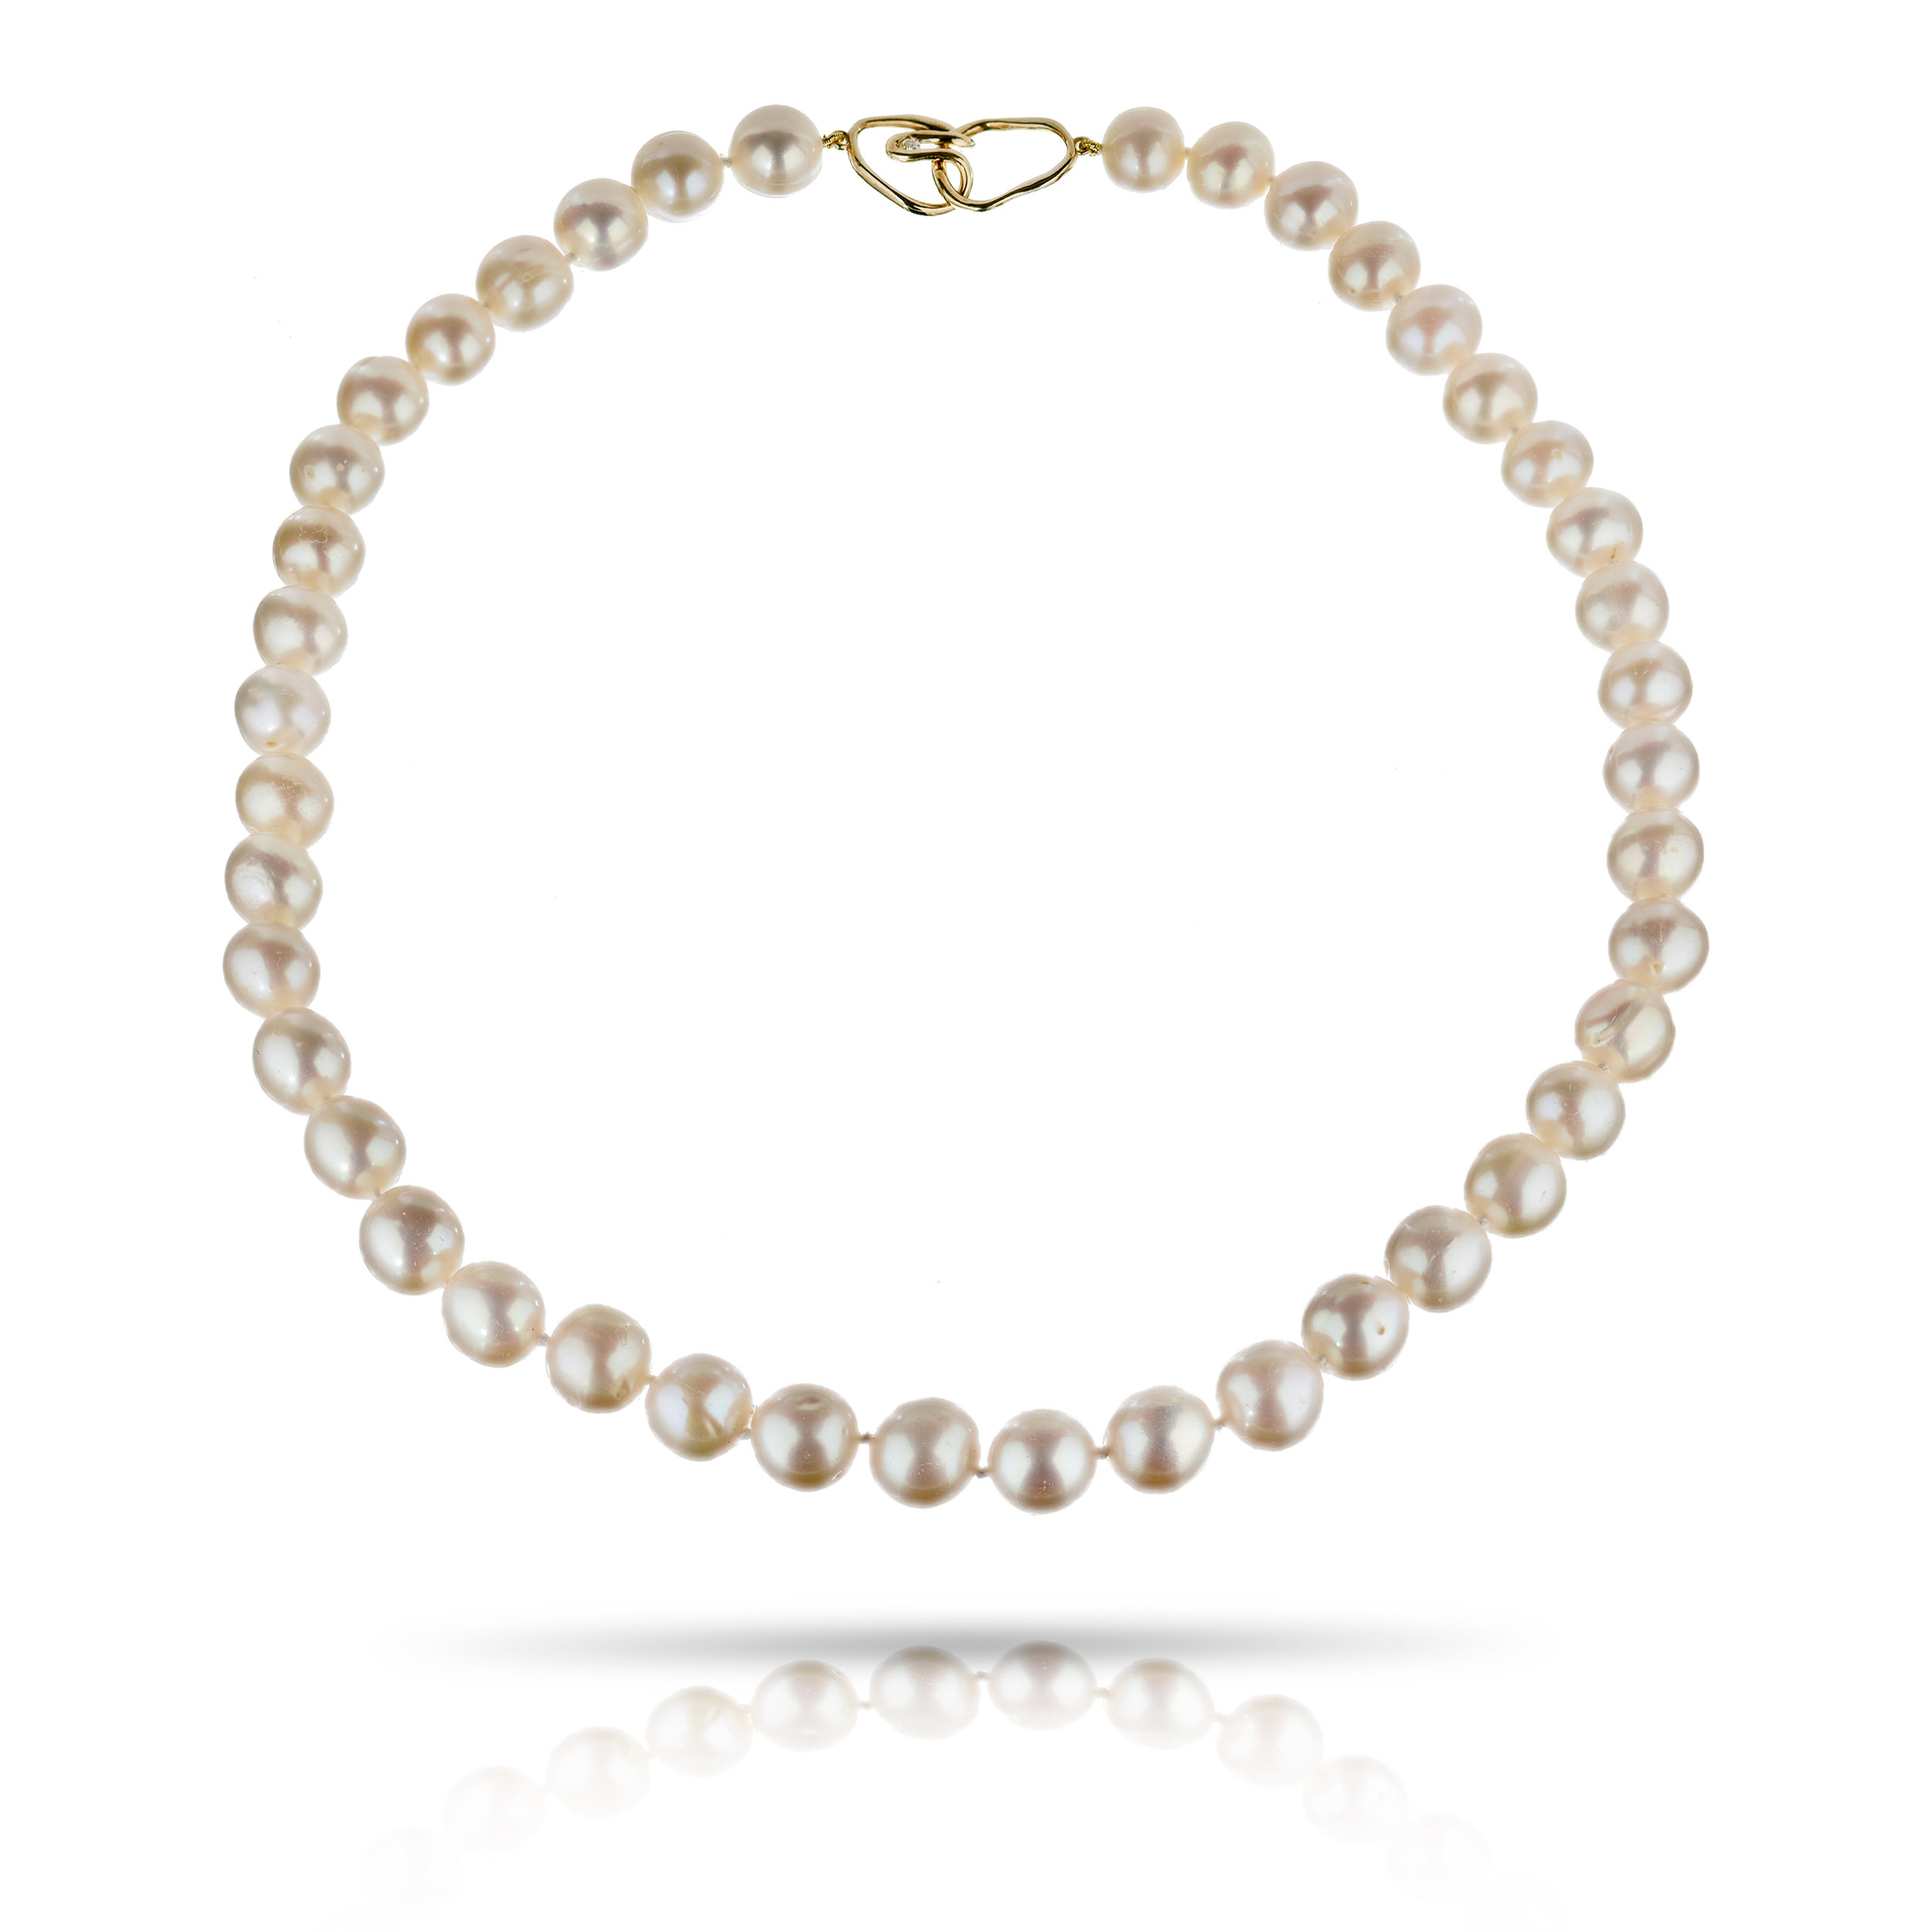 PEARL NECKLACE WITH DIAMOND CLASP CRAFTED IN 18K YELLOW GOLD